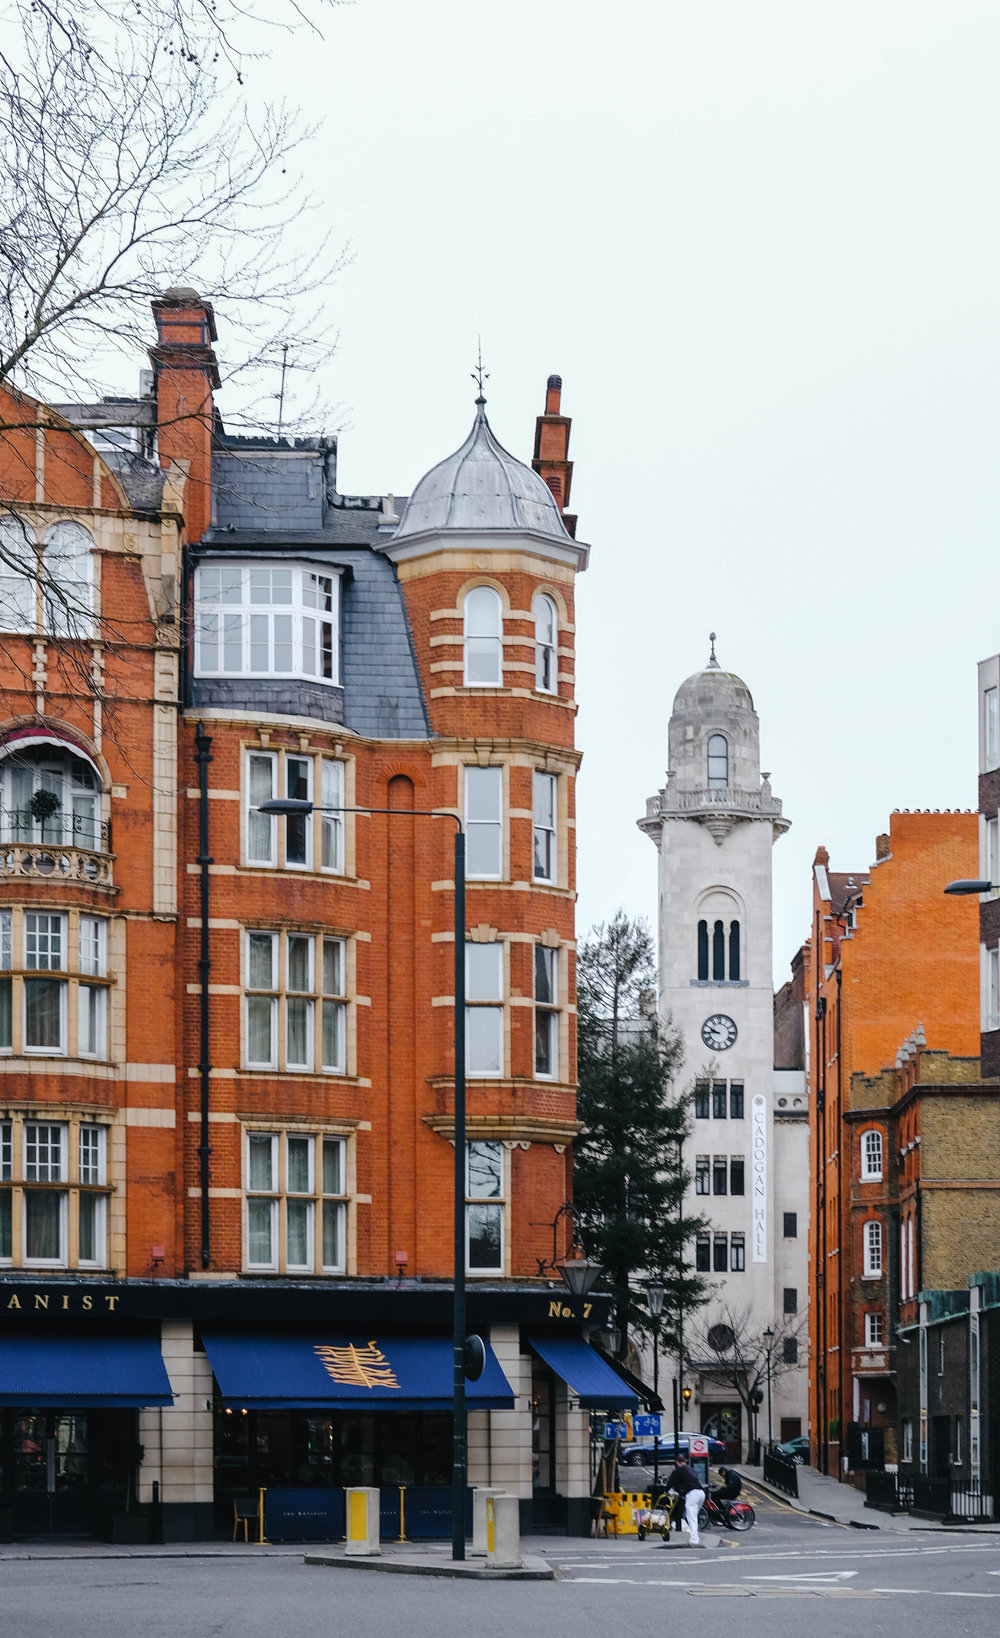 "<p style=""font-family:brandon-grotesque;font-weight:500; font-size:11px; text-center:left; color:light grey;letter-spacing: 1px"">FEBRUARY 6, 2018 • SLOANE SQUARE • 📍London, UK 🇬🇧</p>"